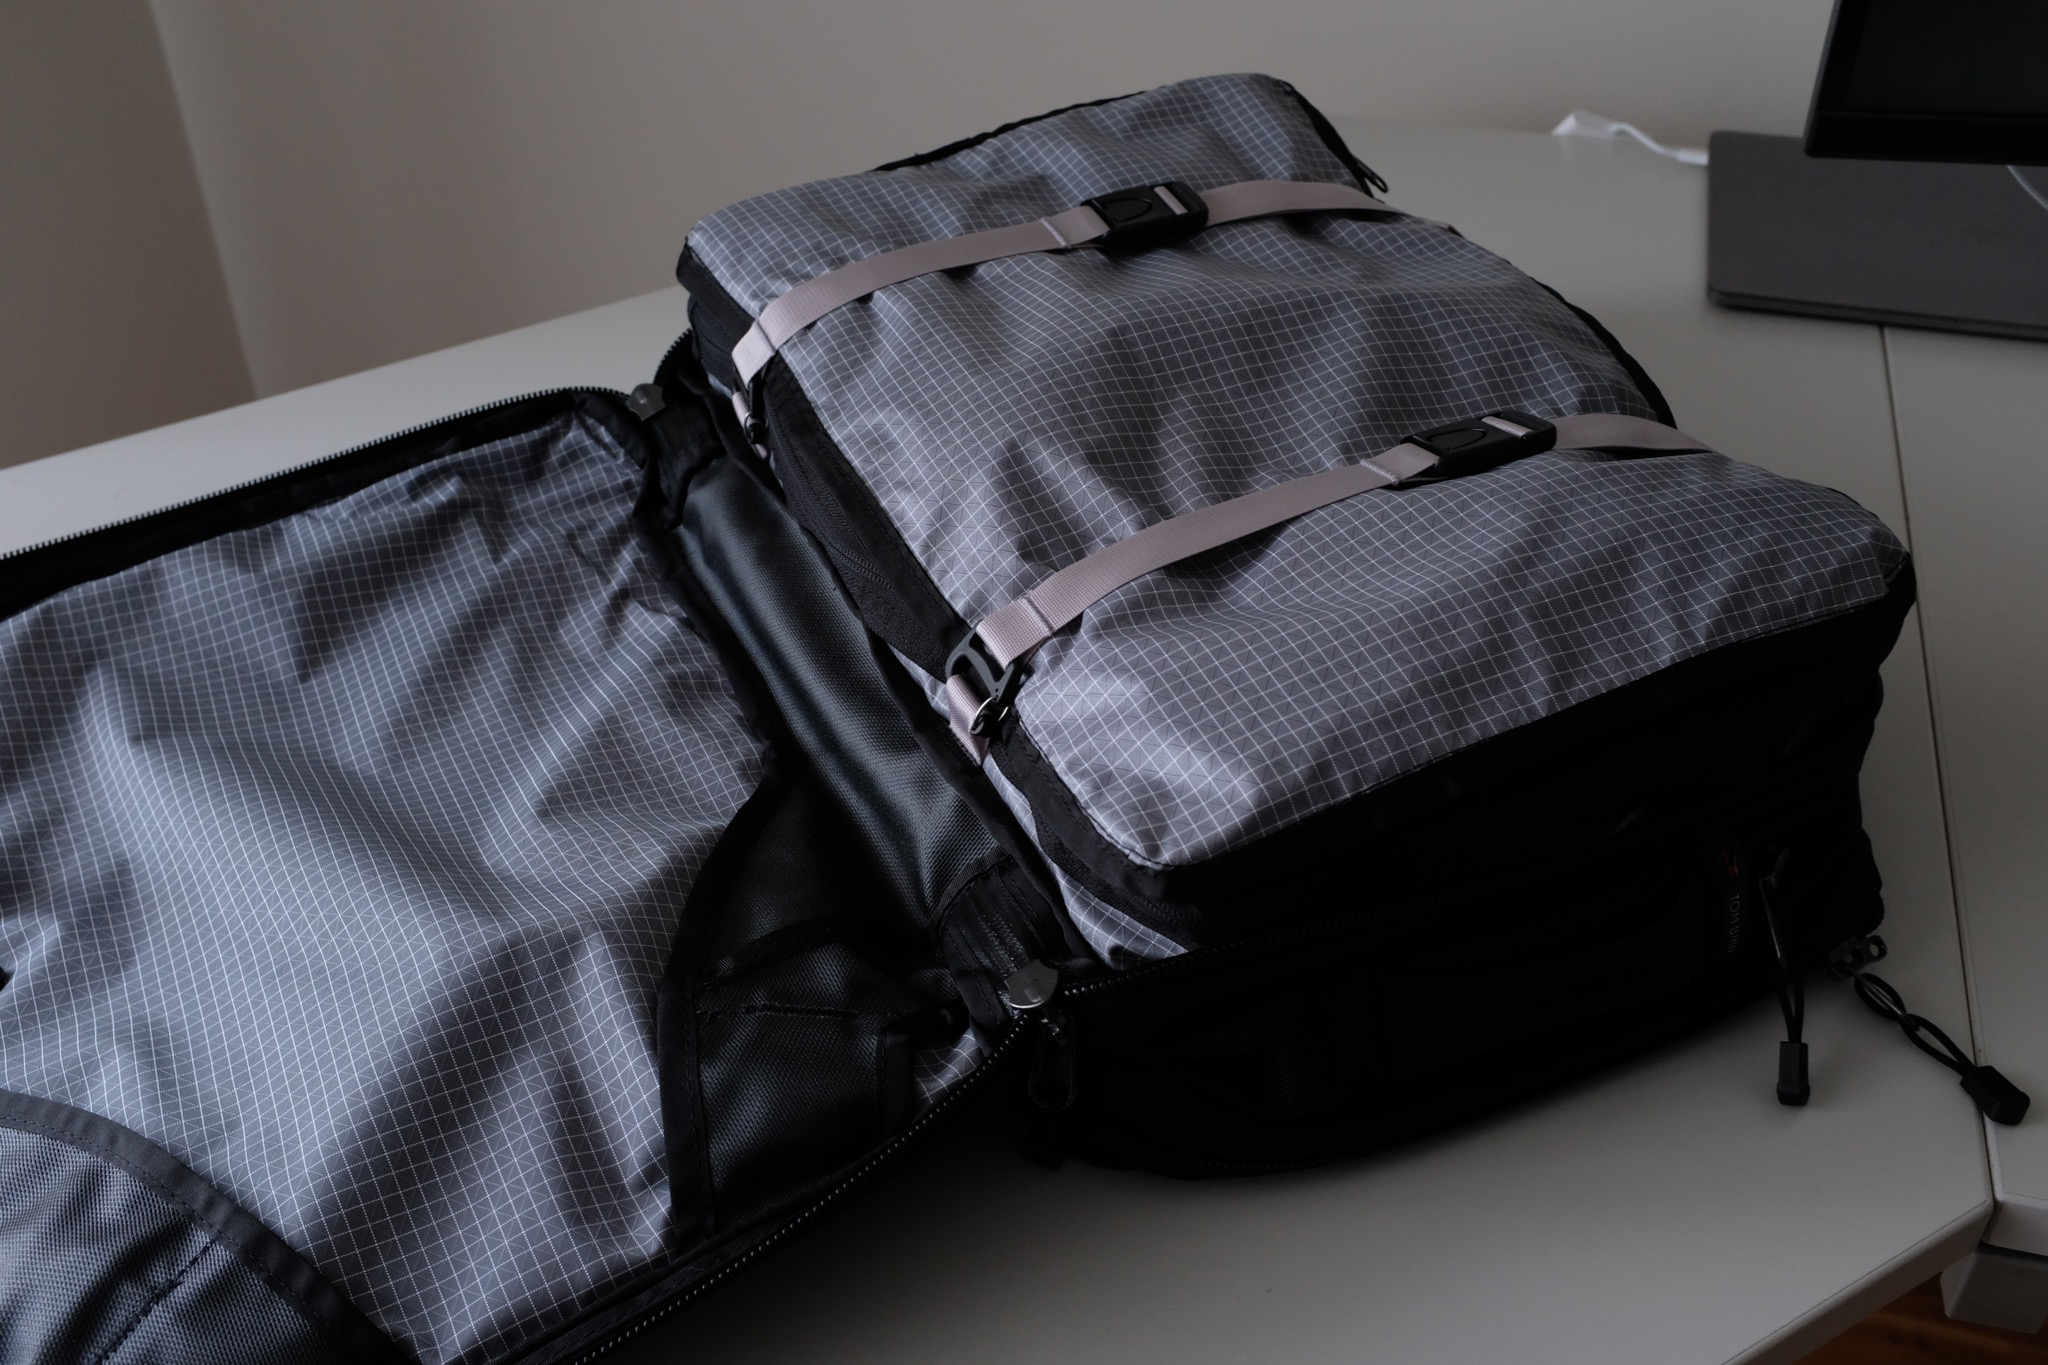 The PCBP perfectly fits into the large compartment and with the compression straps you can even gain more space